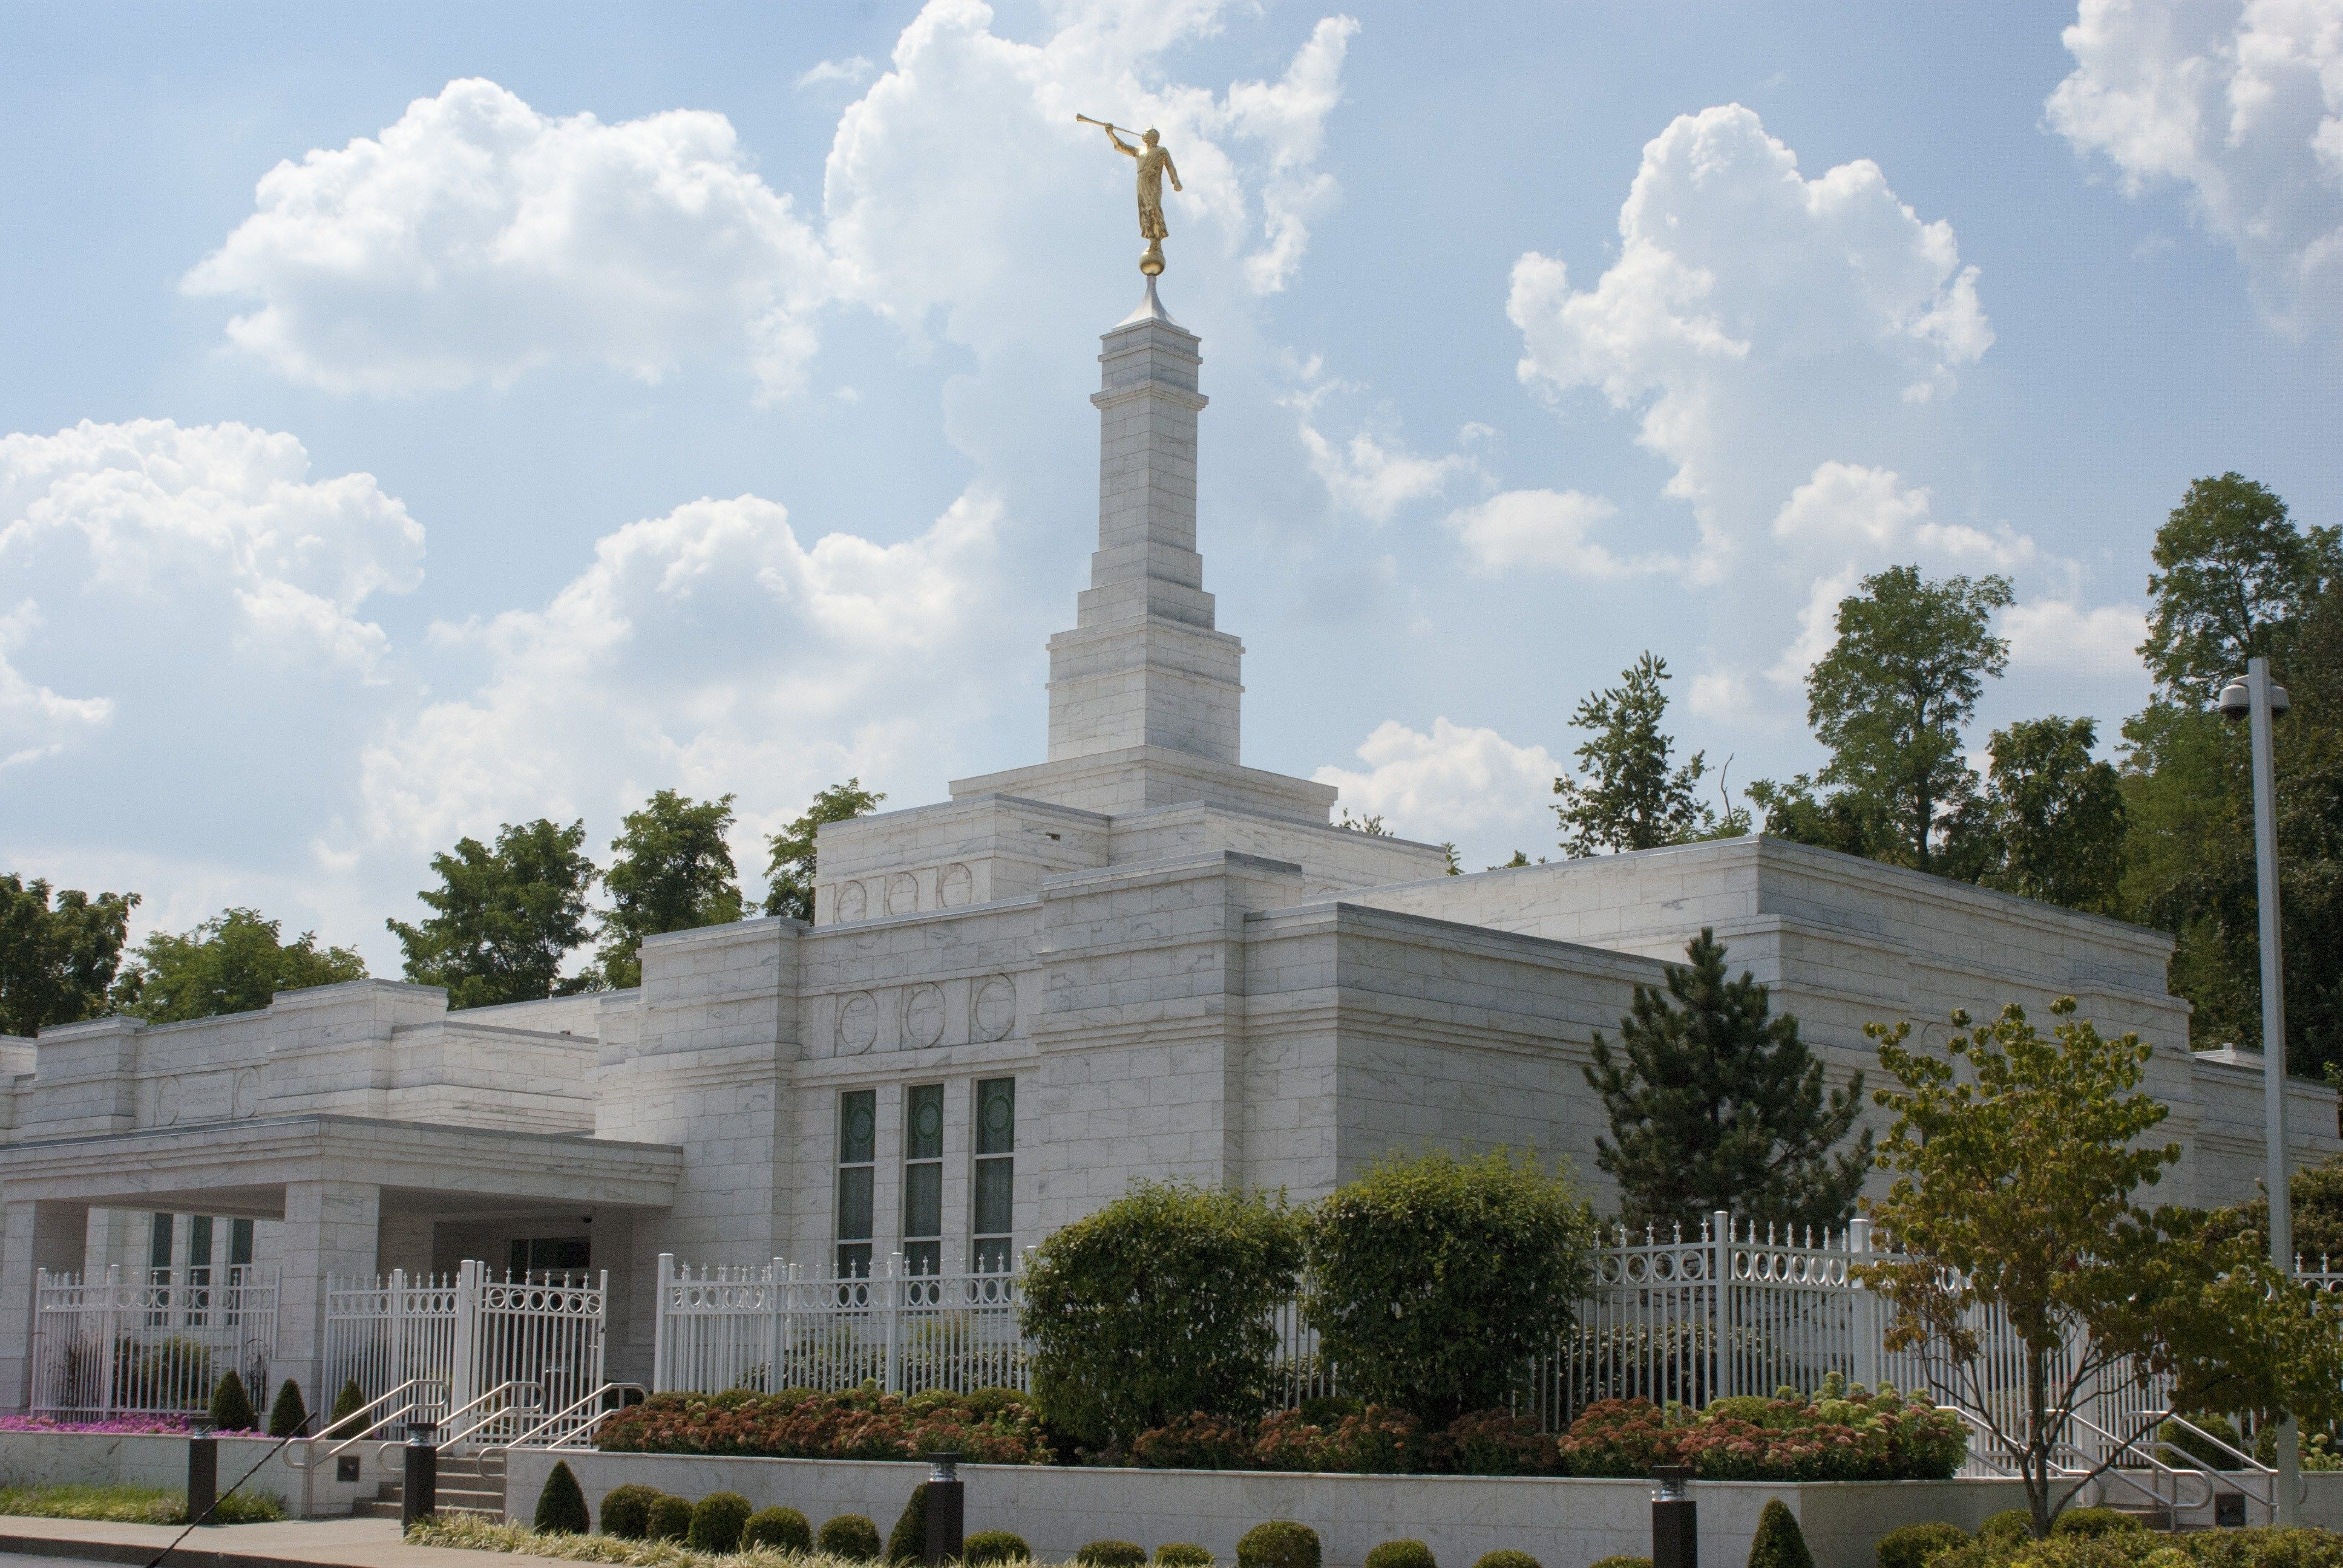 The Louisville Kentucky Temple entrance, including scenery.